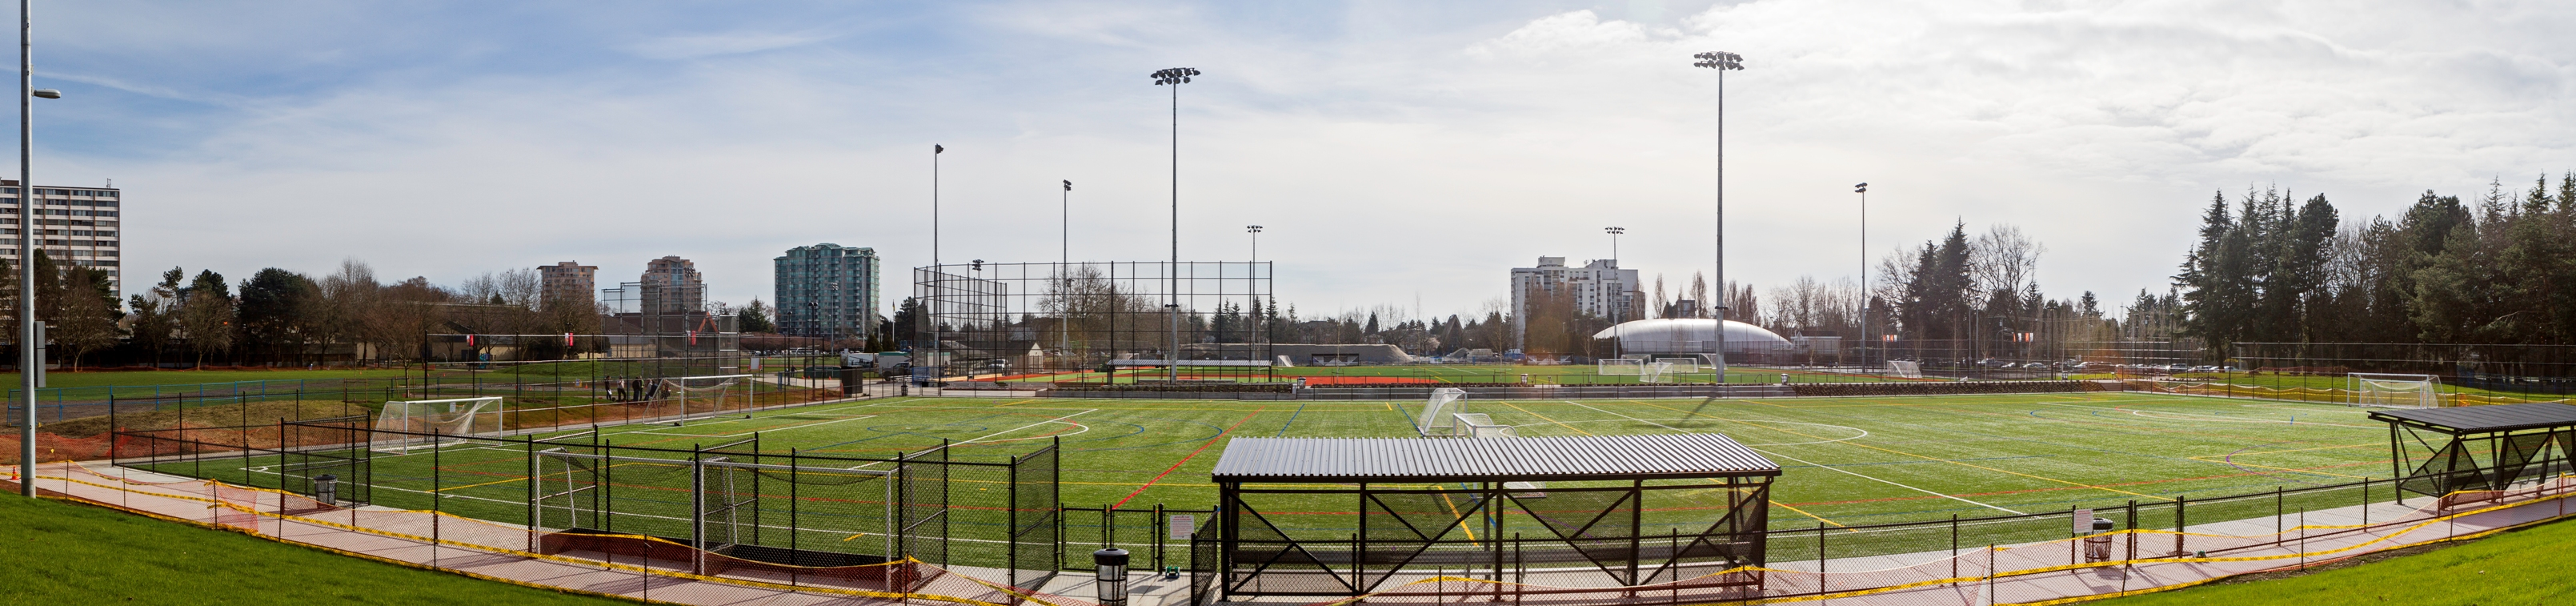 View of new artificial turf fields